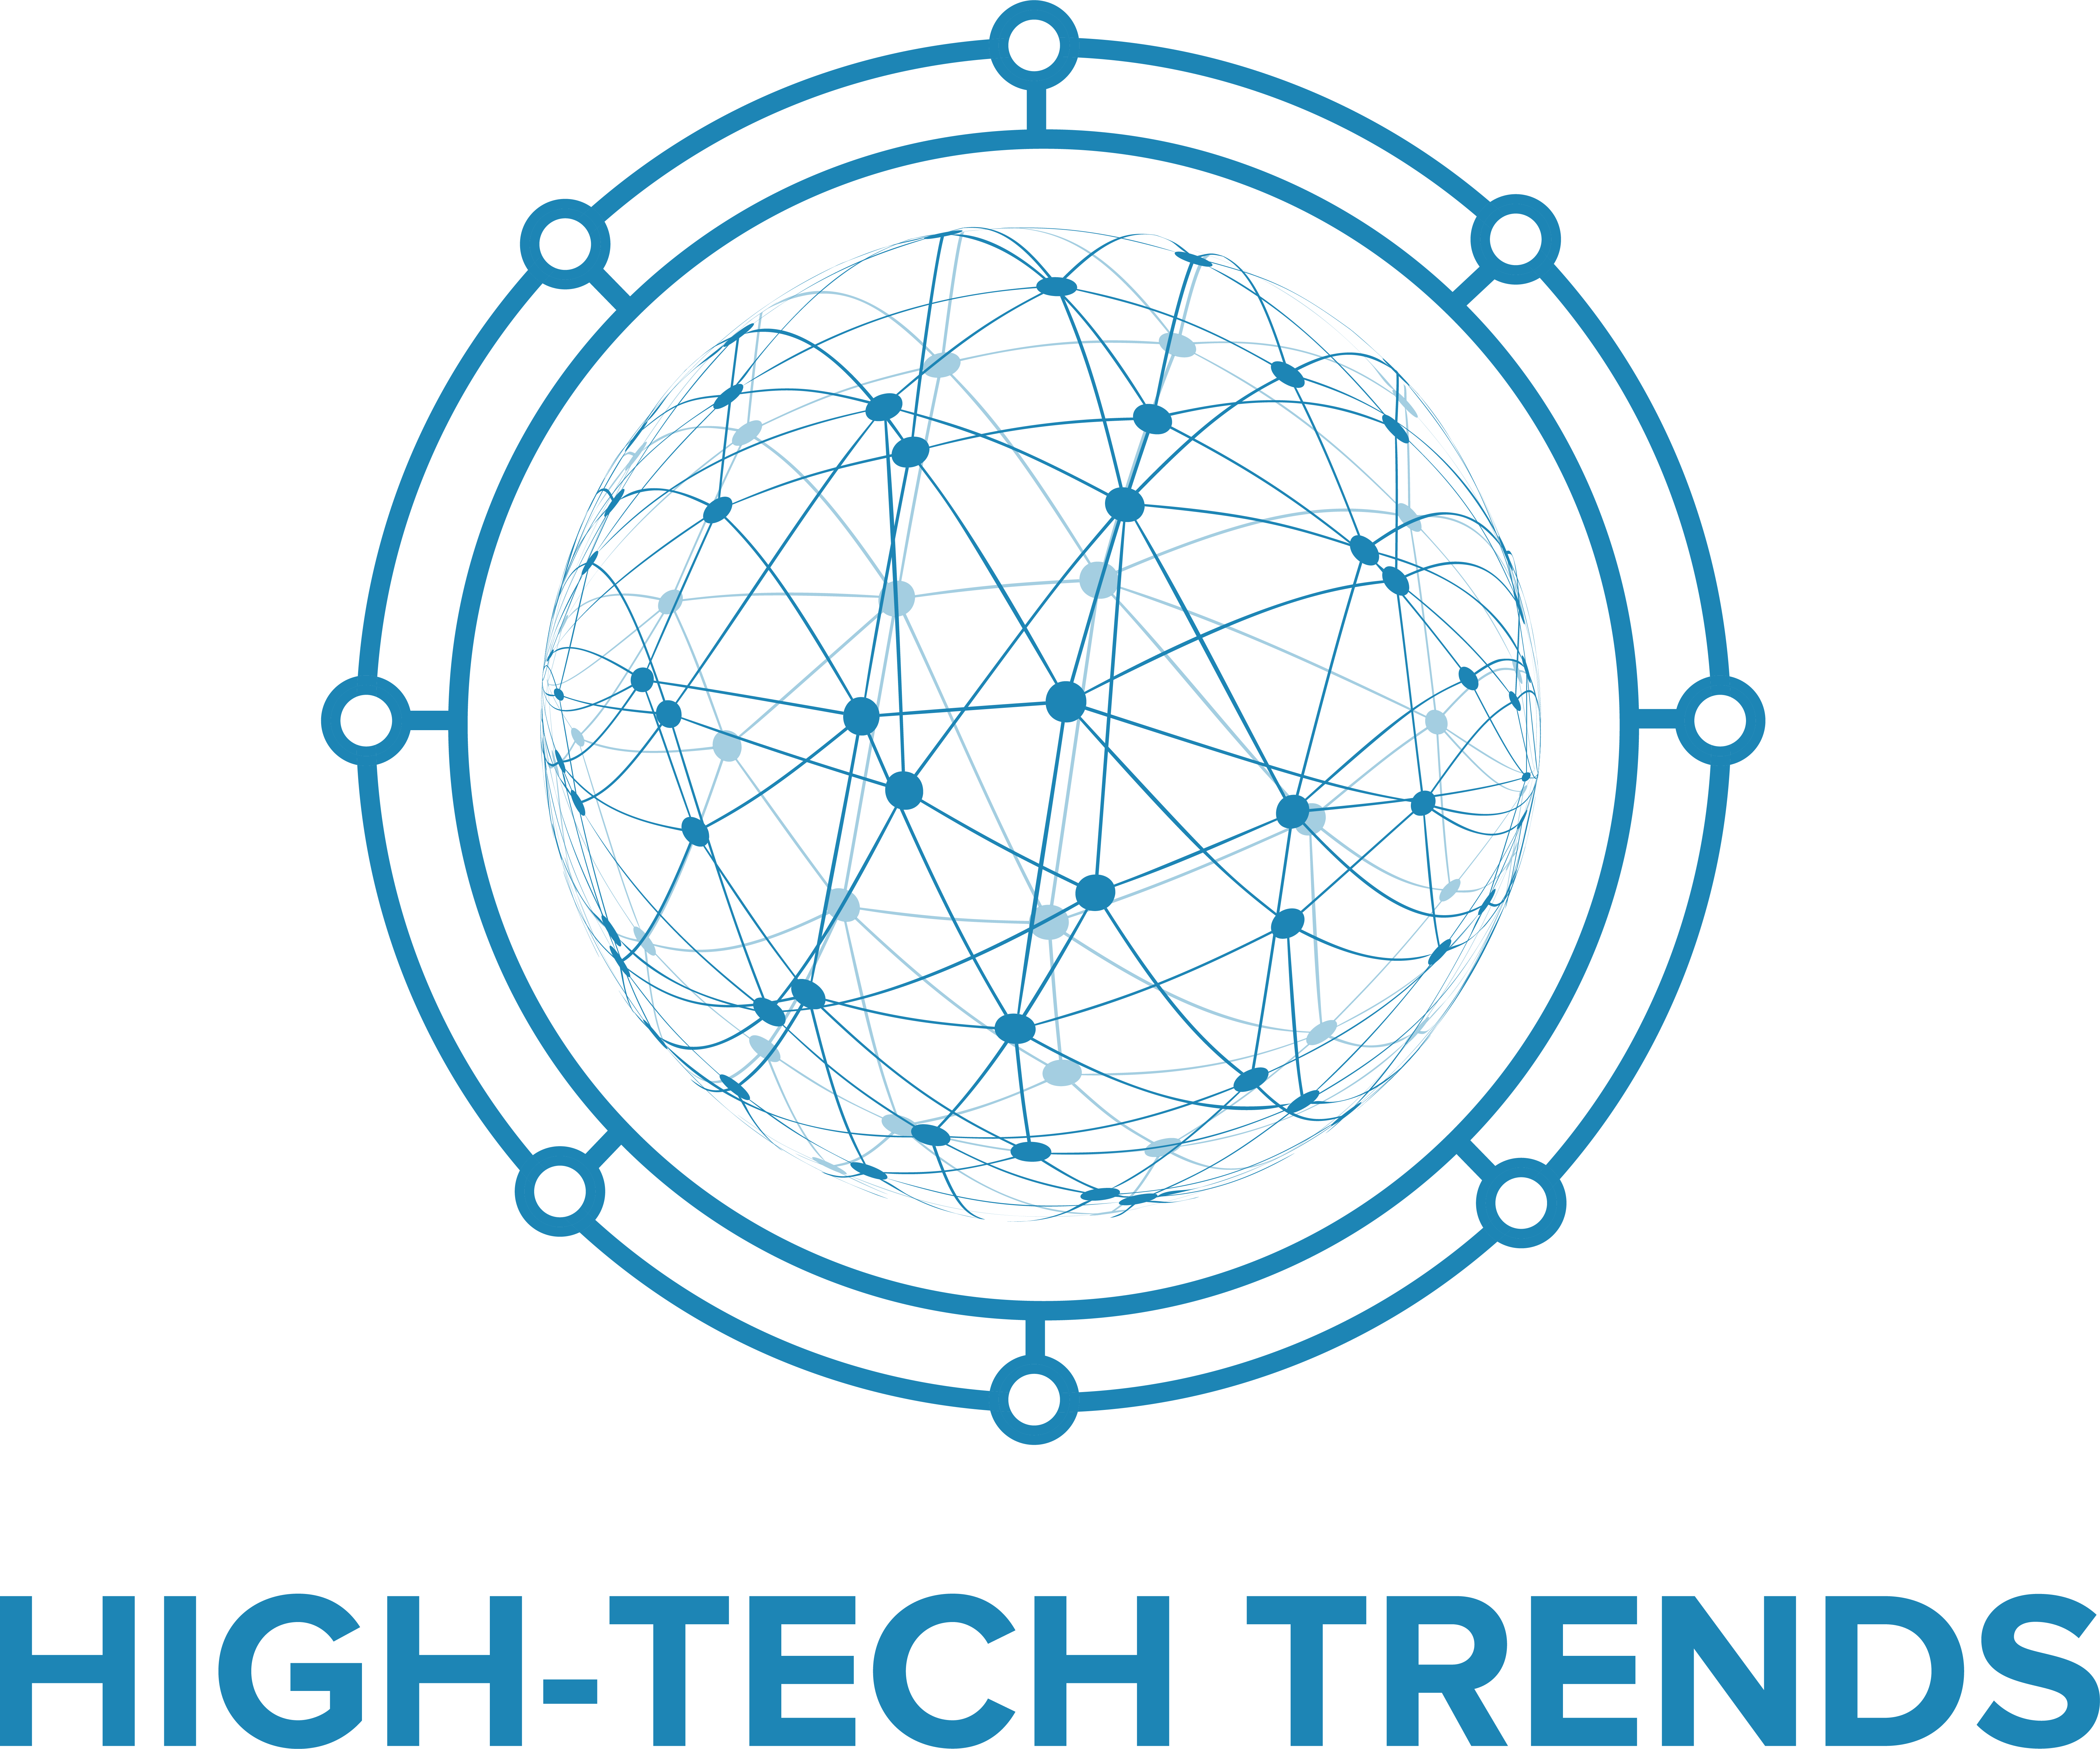 High-Tech Trends Magazine